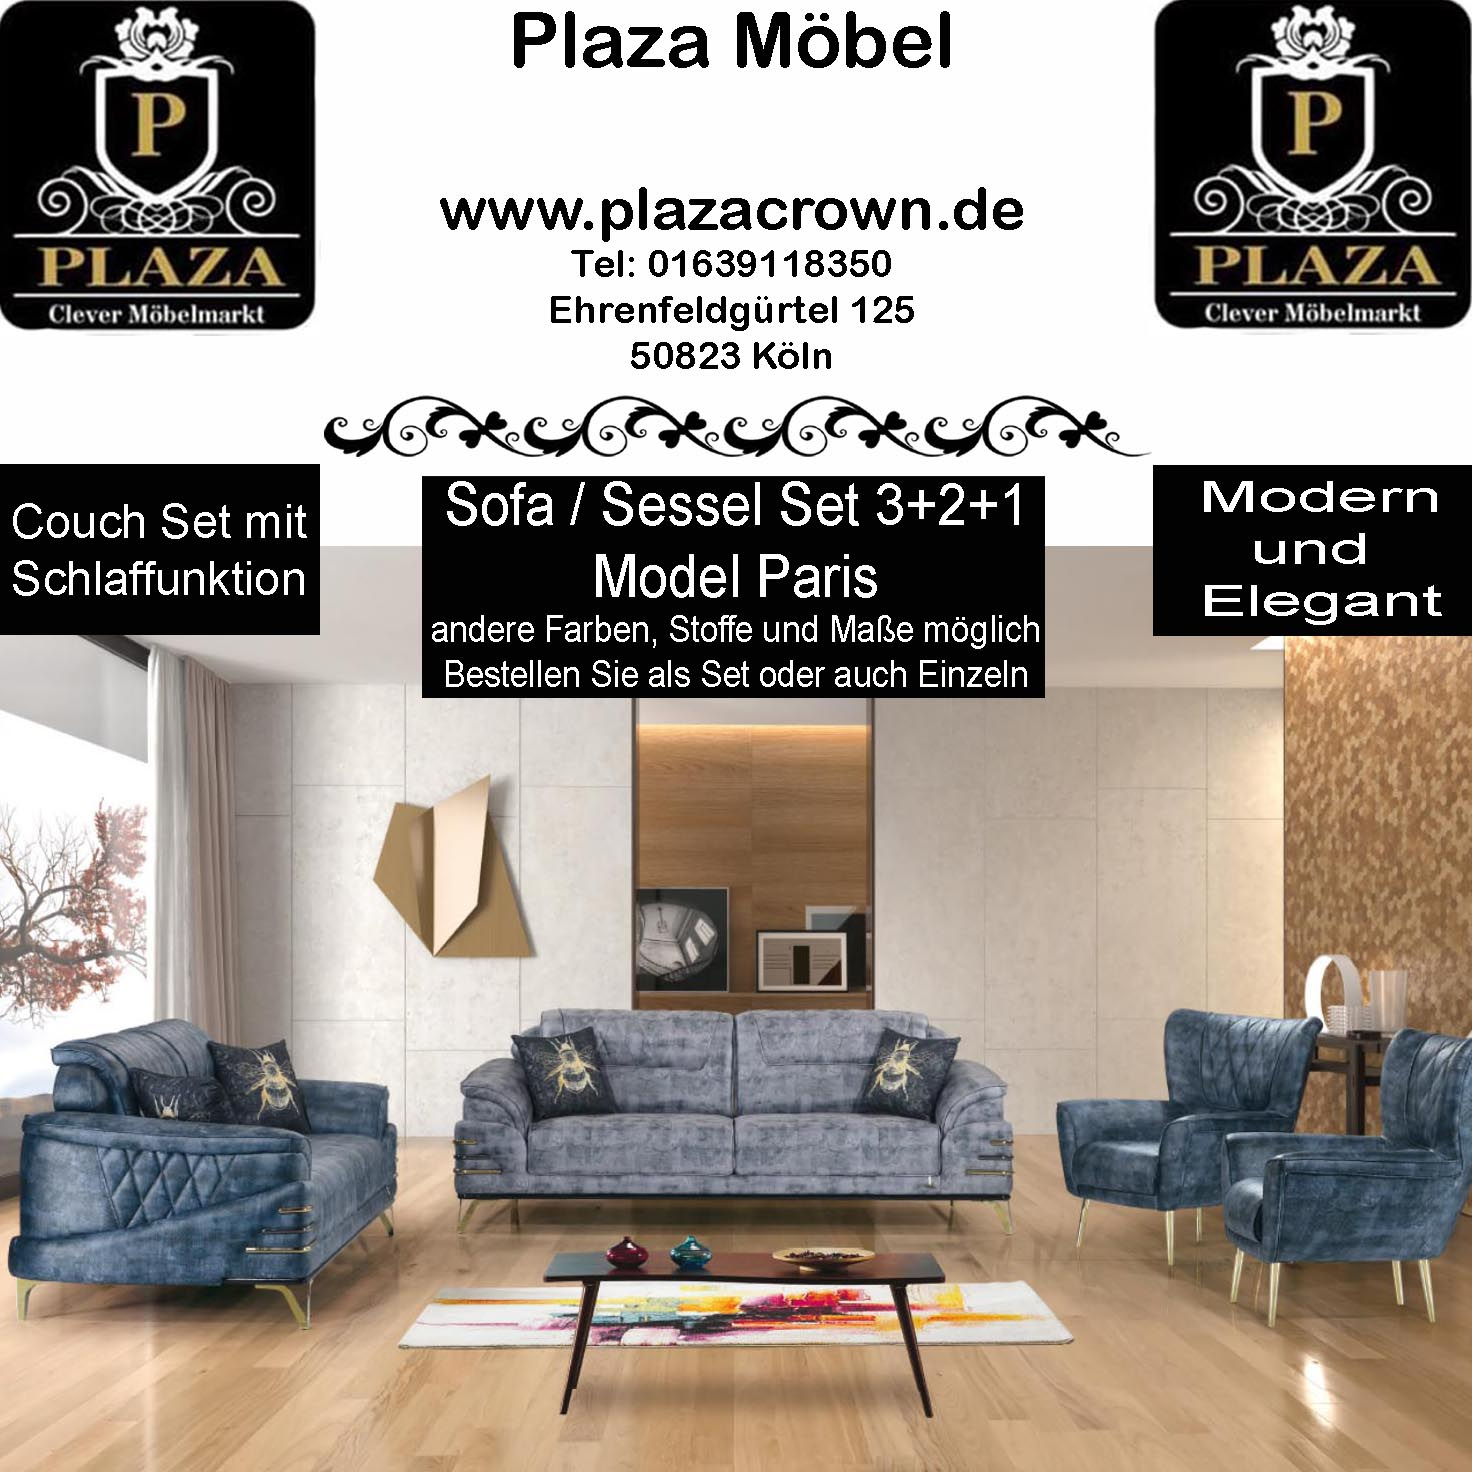 Moderne Couch Garniture Sofa Sessel Schlafsofa Model Paris Plazacrown